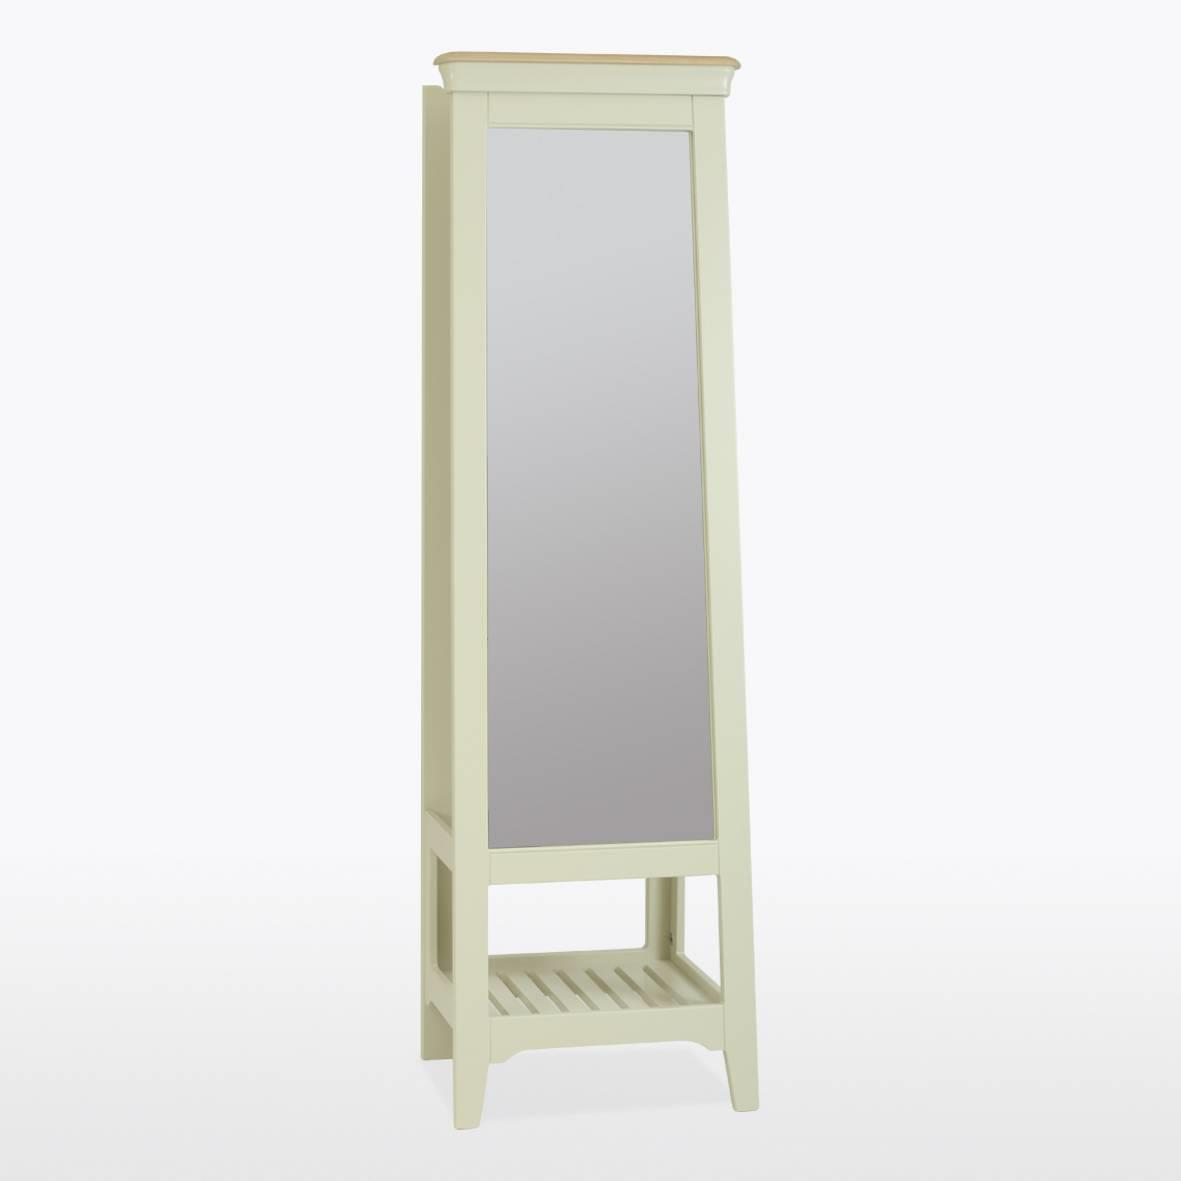 CROMWELL - CHEVAL Mirror - CRO833 Toasted Almond & Oak